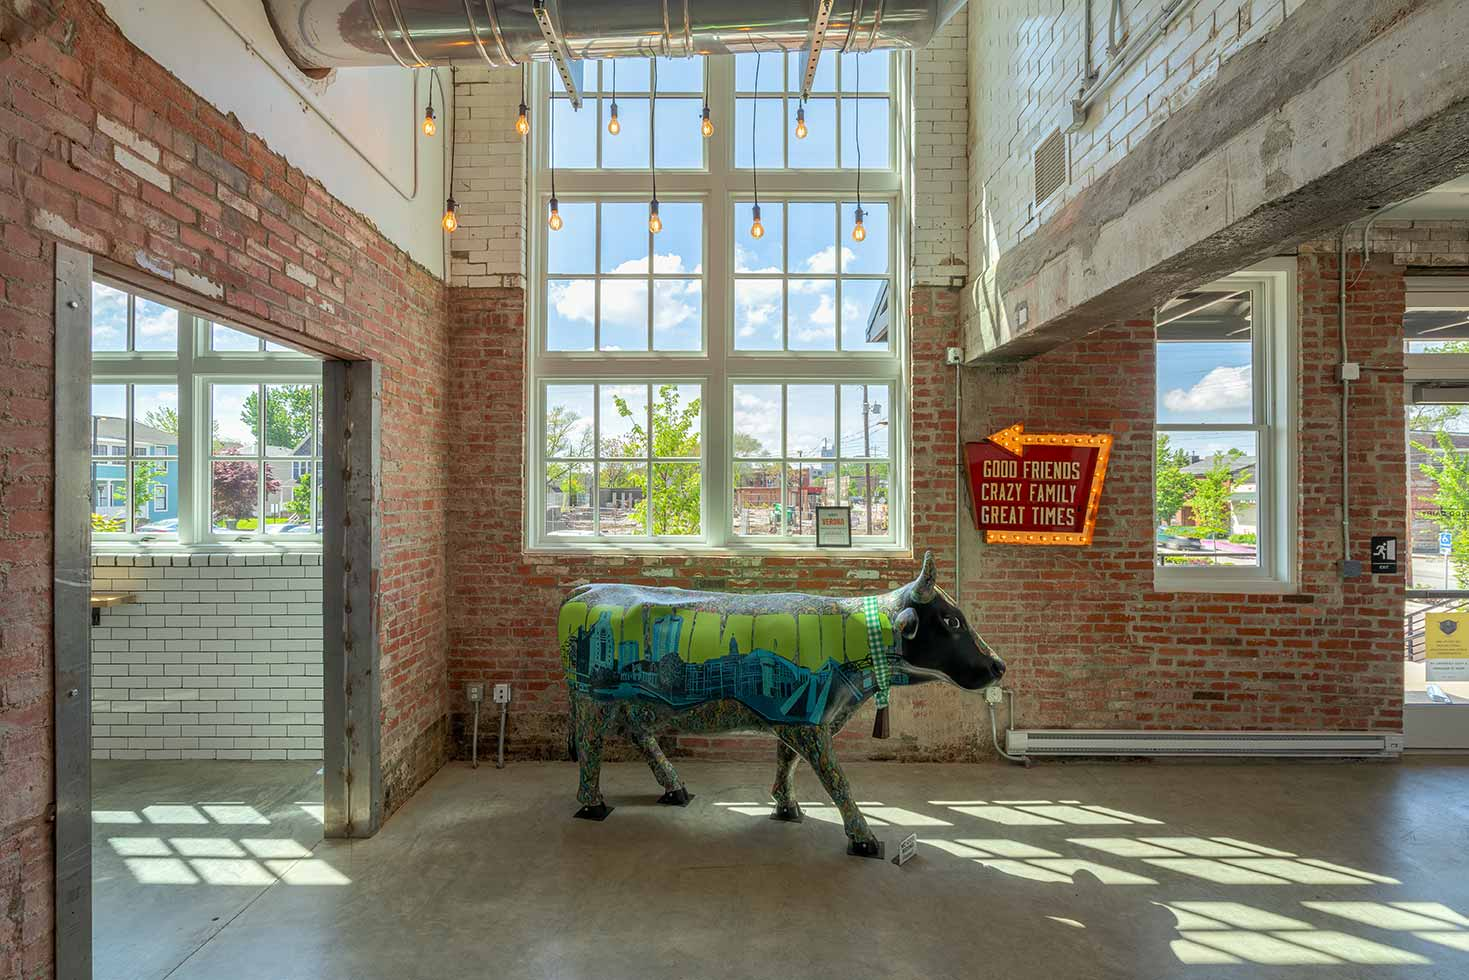 The Budd Dairy Food Hall mascot cow at the front entrance in front of large windows.